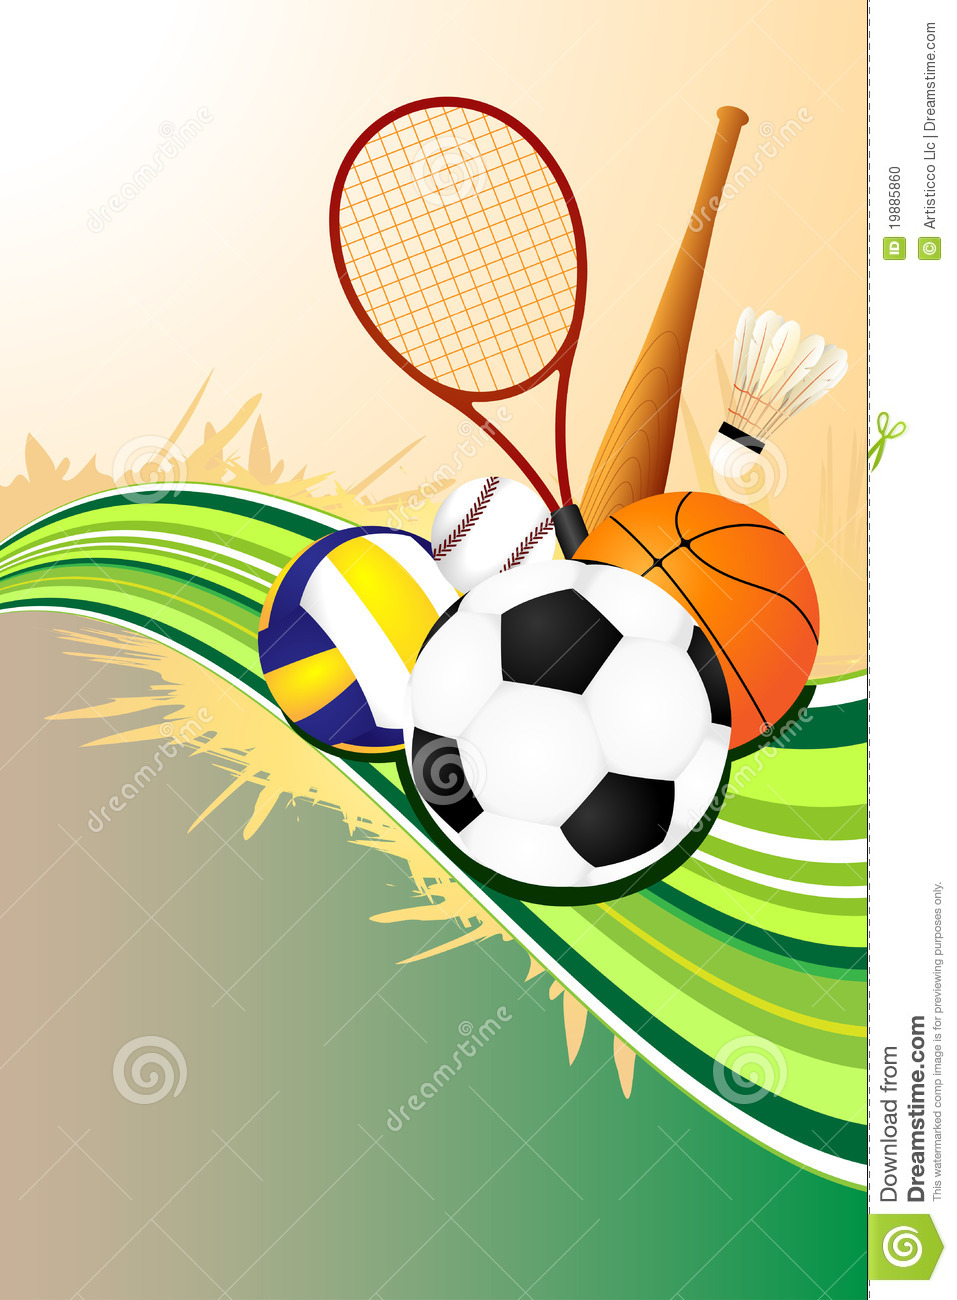 sports background ball balls backgrounds illustration vector wallpapersafari brochure